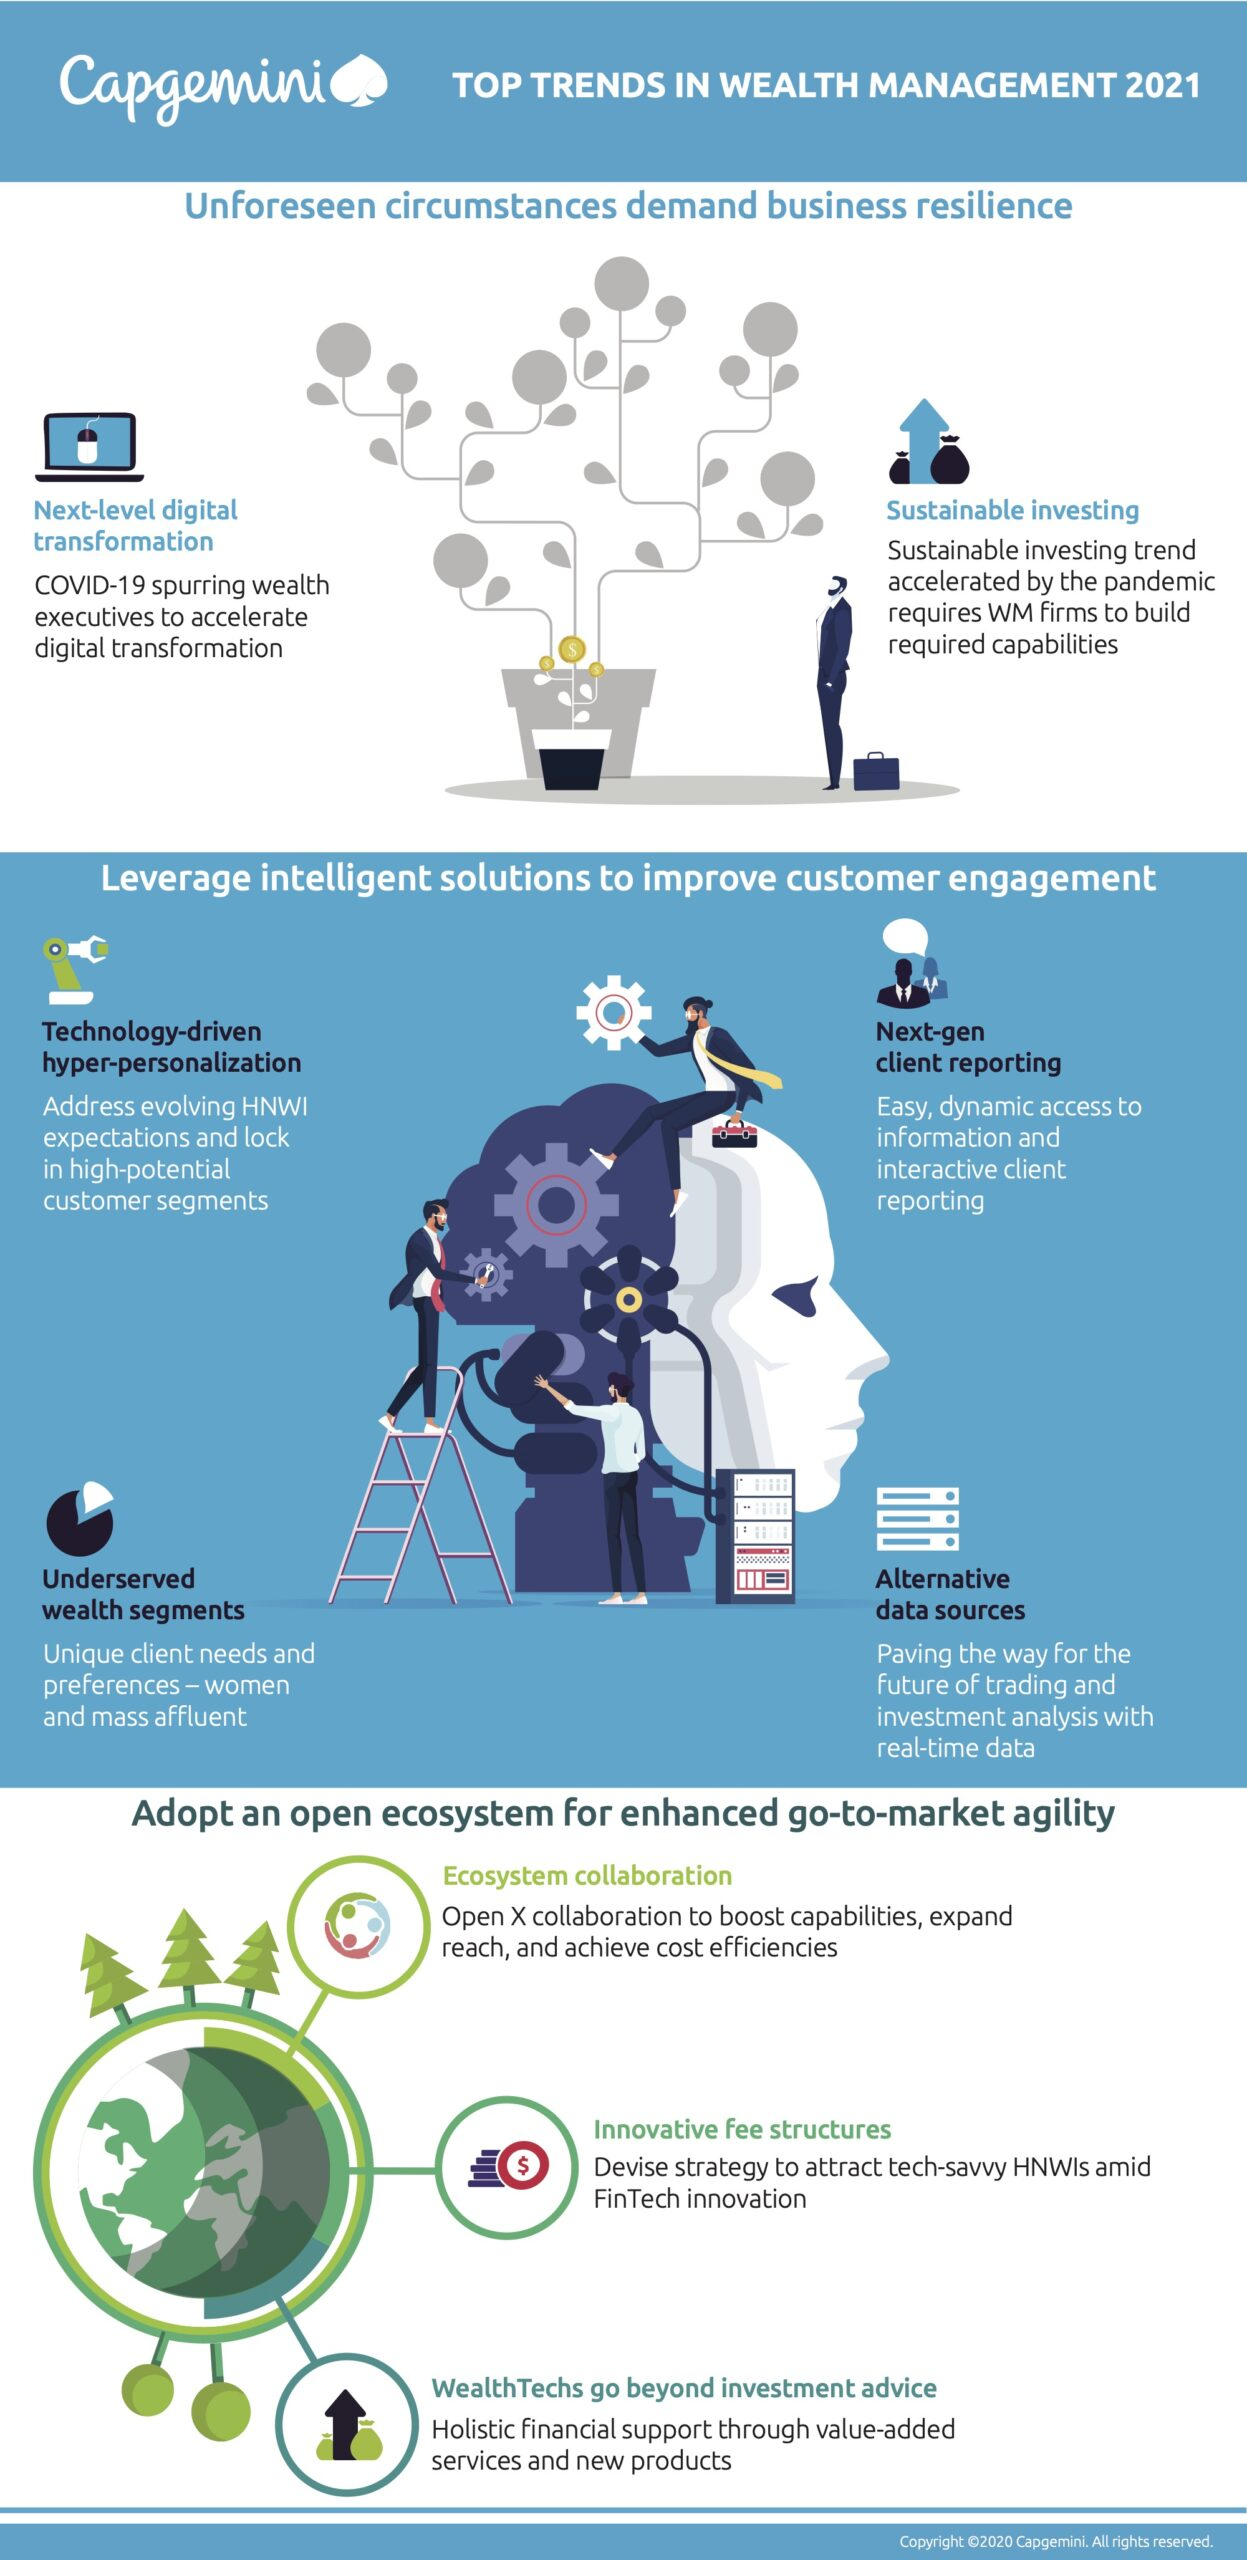 Top Trends 2021 in Wealth Management Infographic, Capgemini, Nov 2020